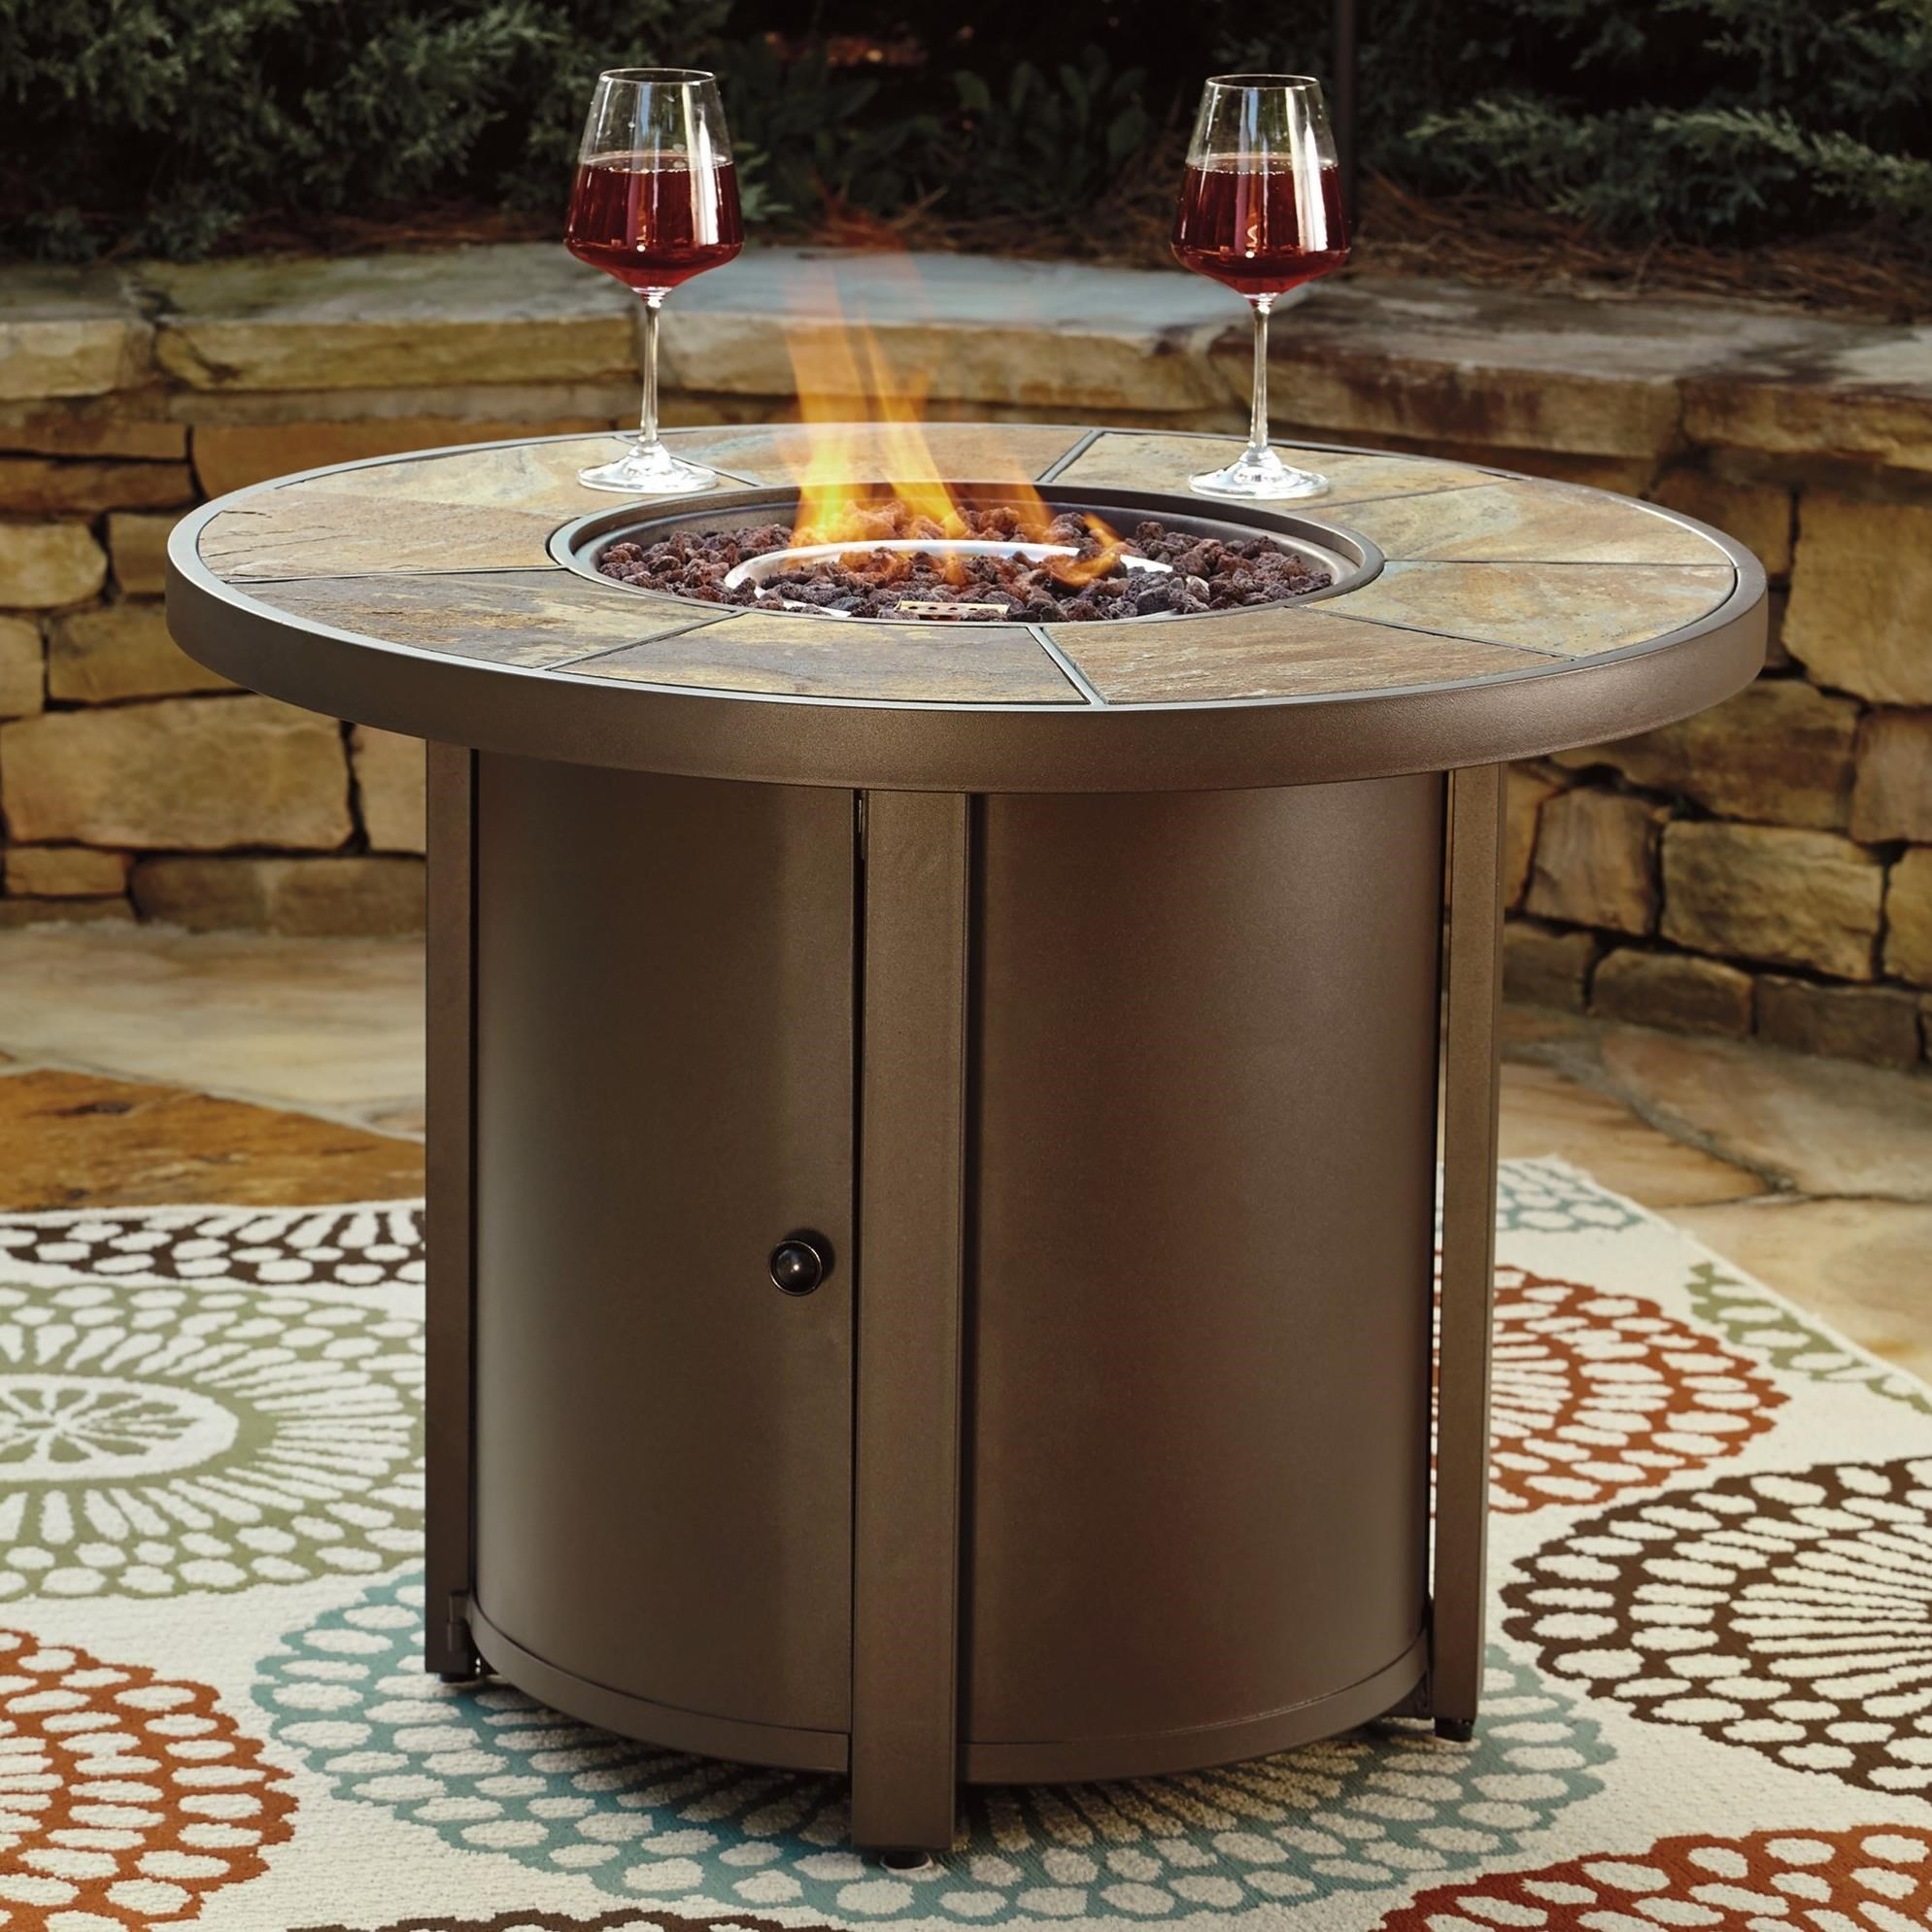 signature design by ashley predmore round fire pit table item number p324776 - Round Fire Pit